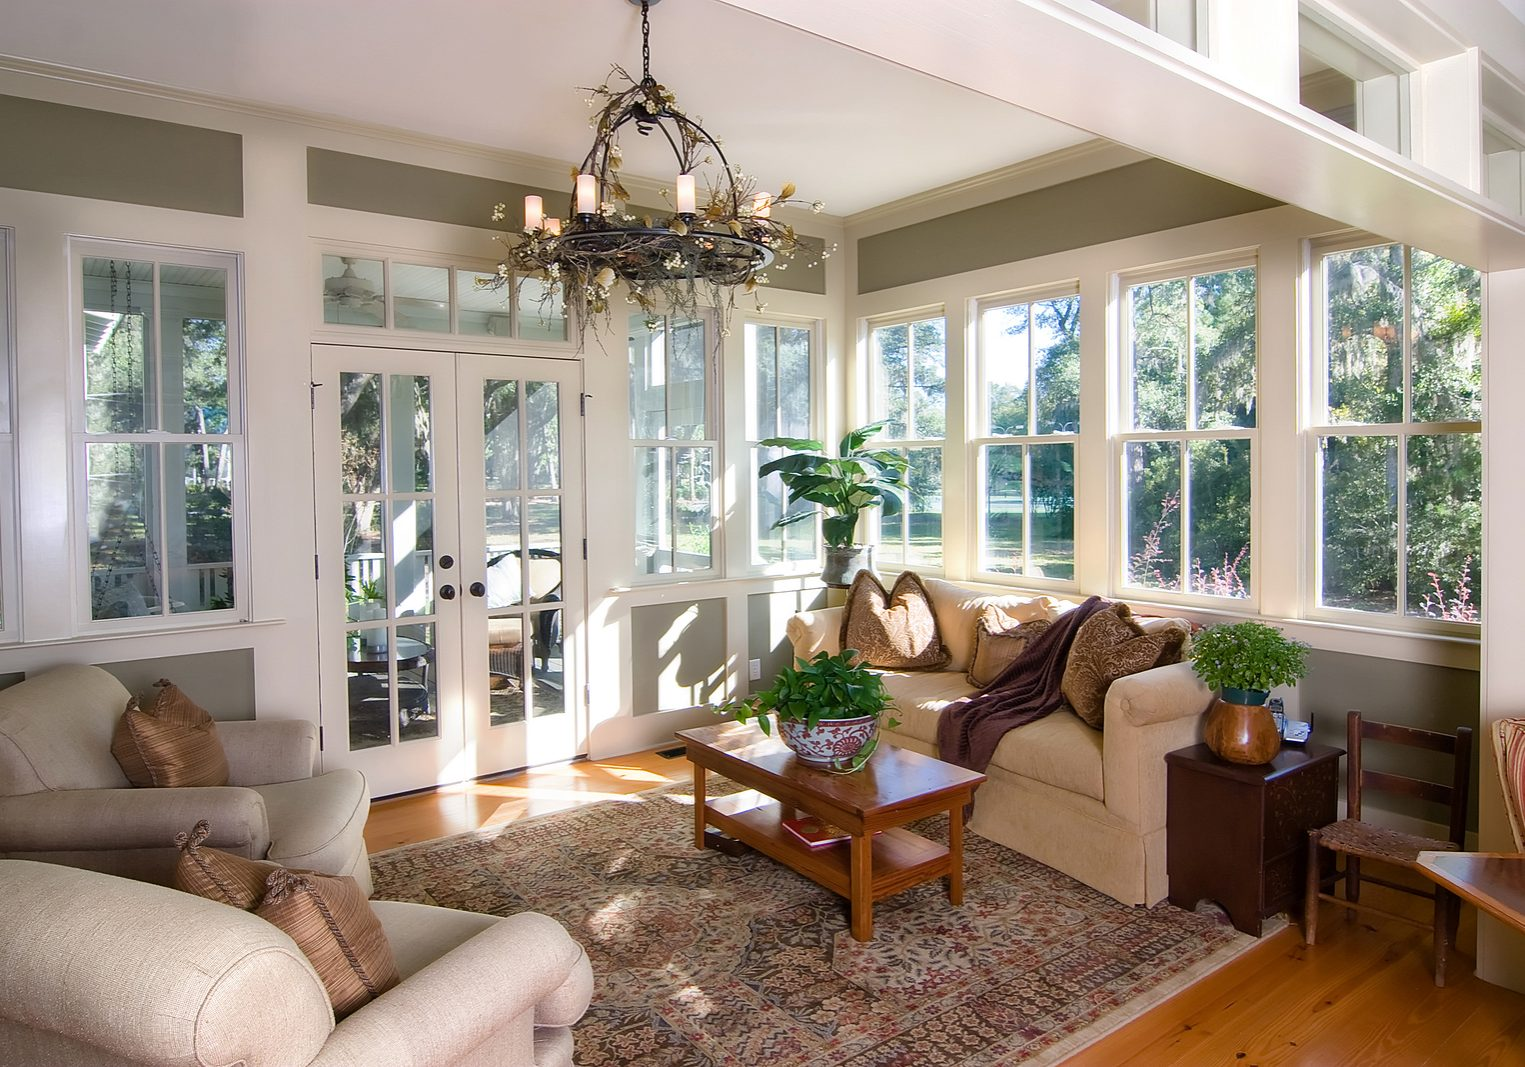 furnished sunroom with large windows and glass doors